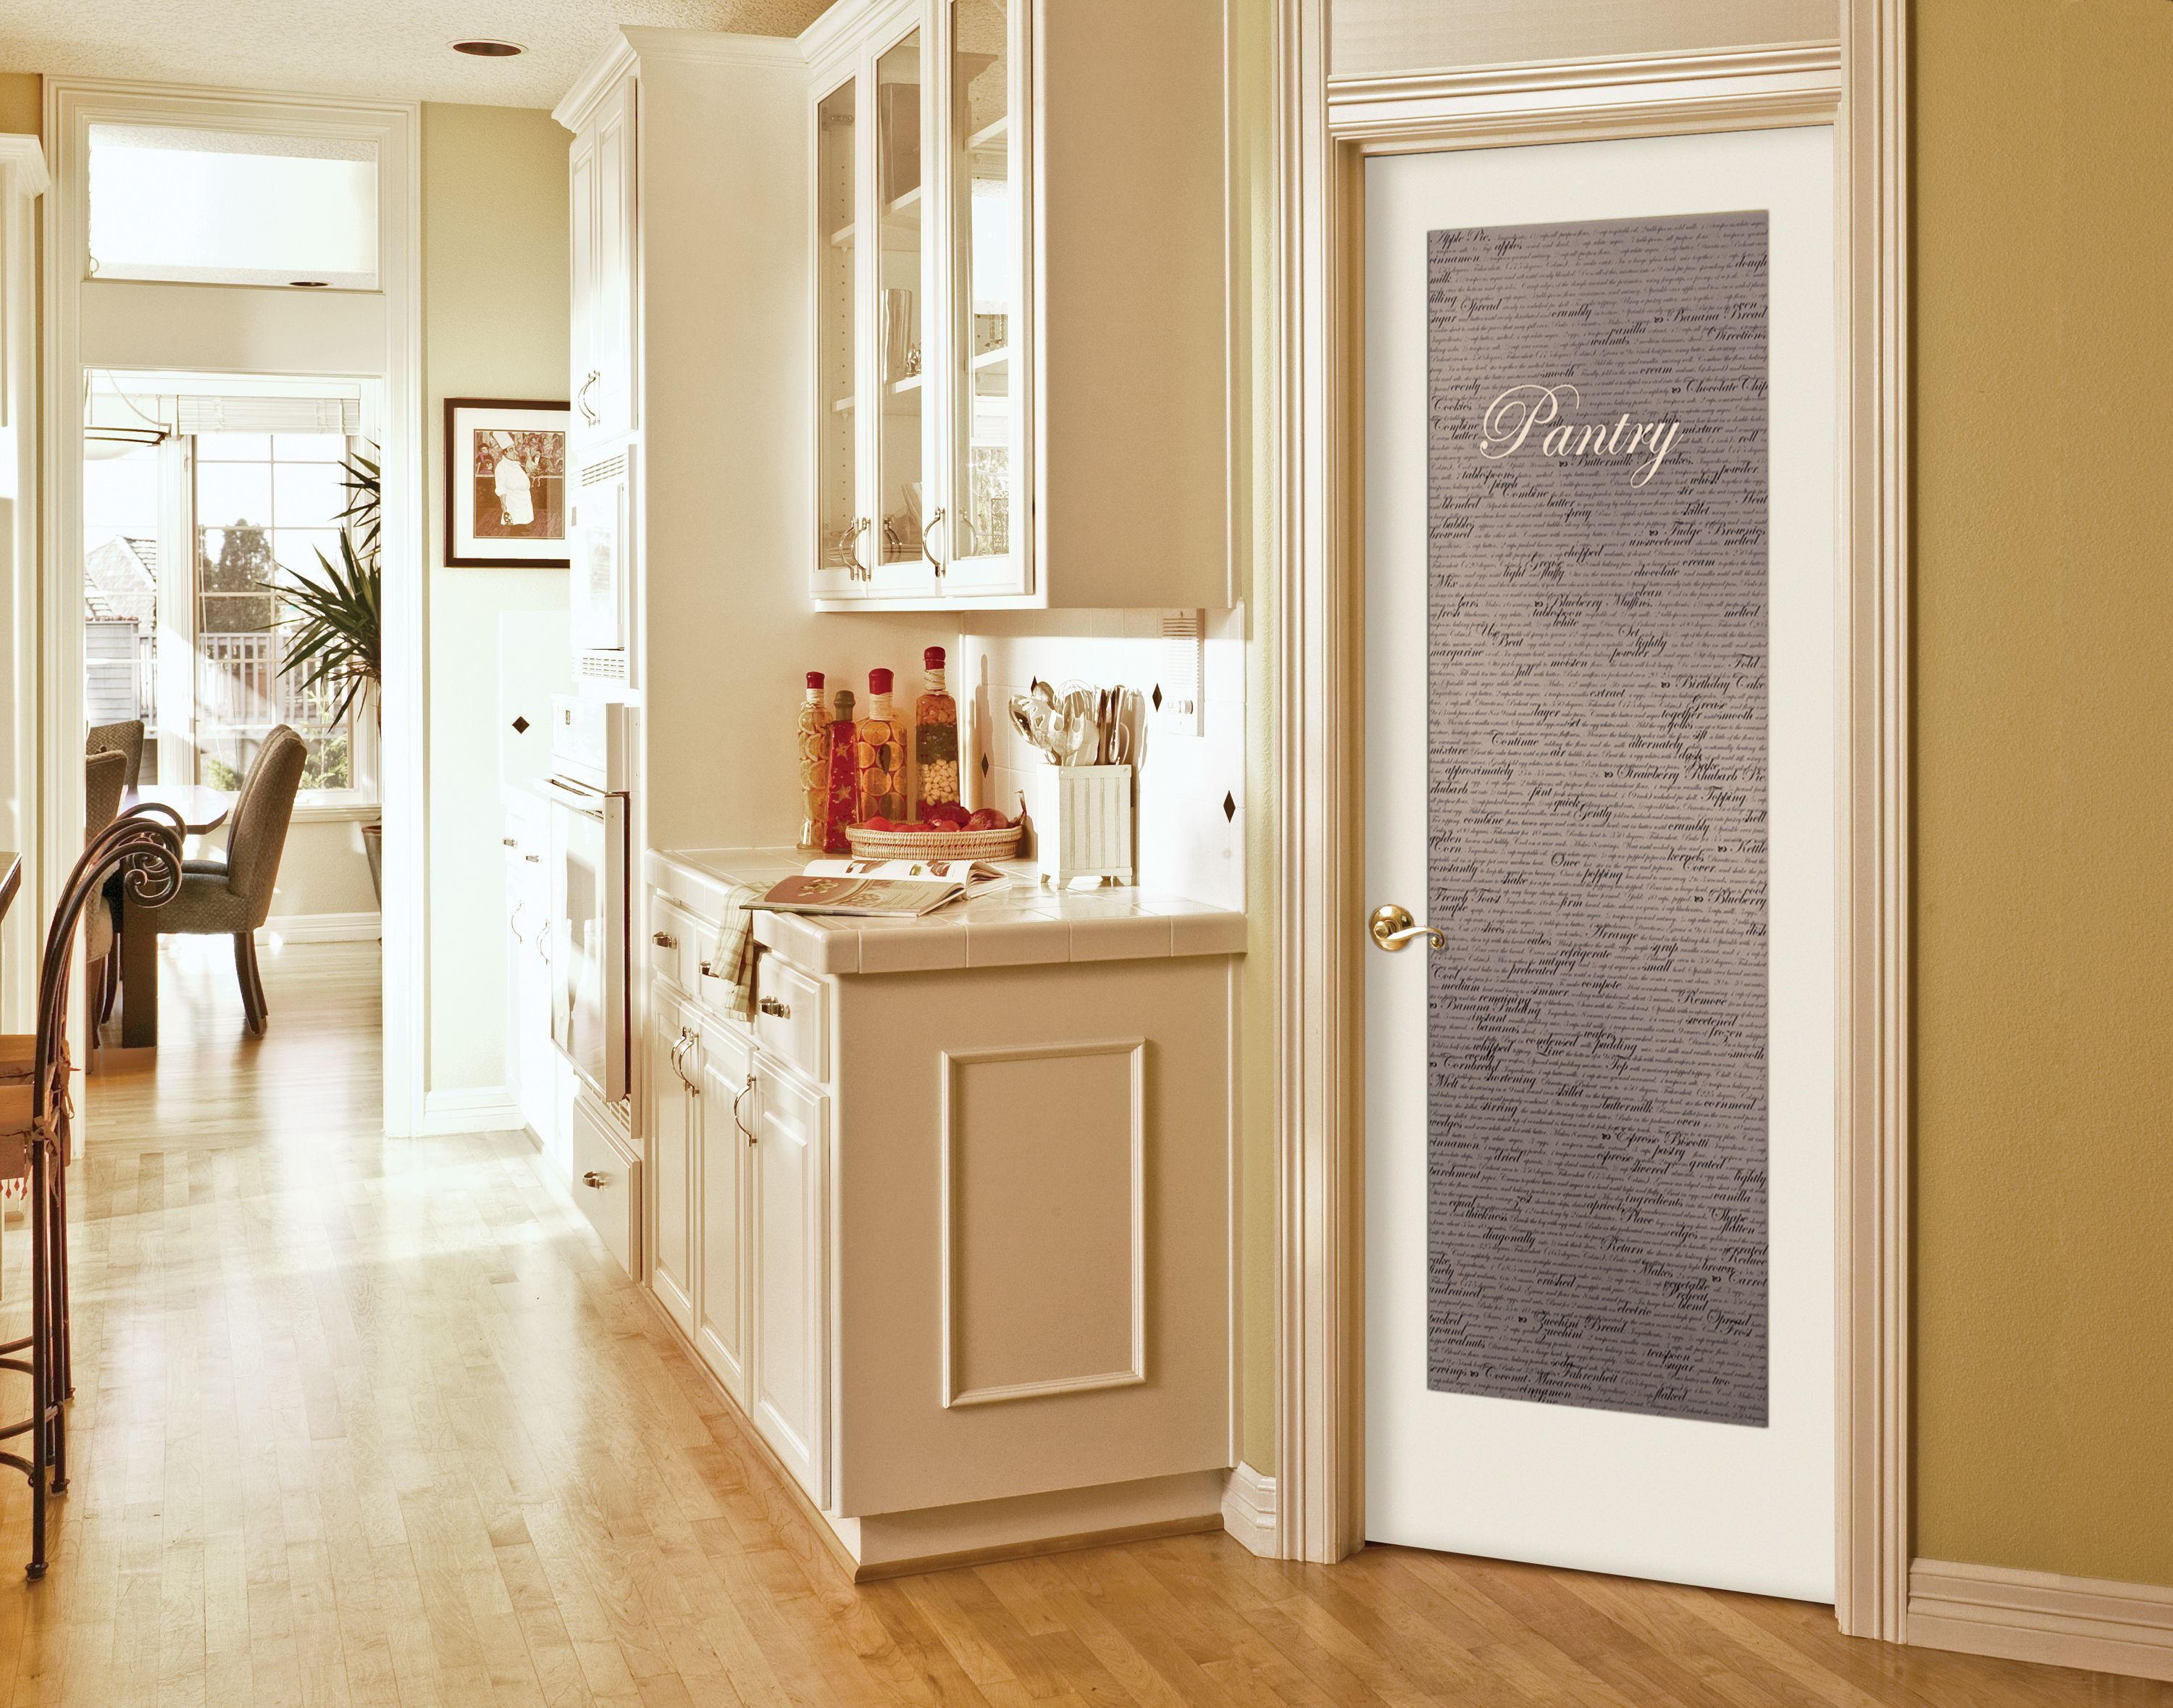 Superbe Cool Single Swing White Frozzen Pantry Door With Wooden Glass Door Kitchen  Cabinetry In Midcentury Kitchen